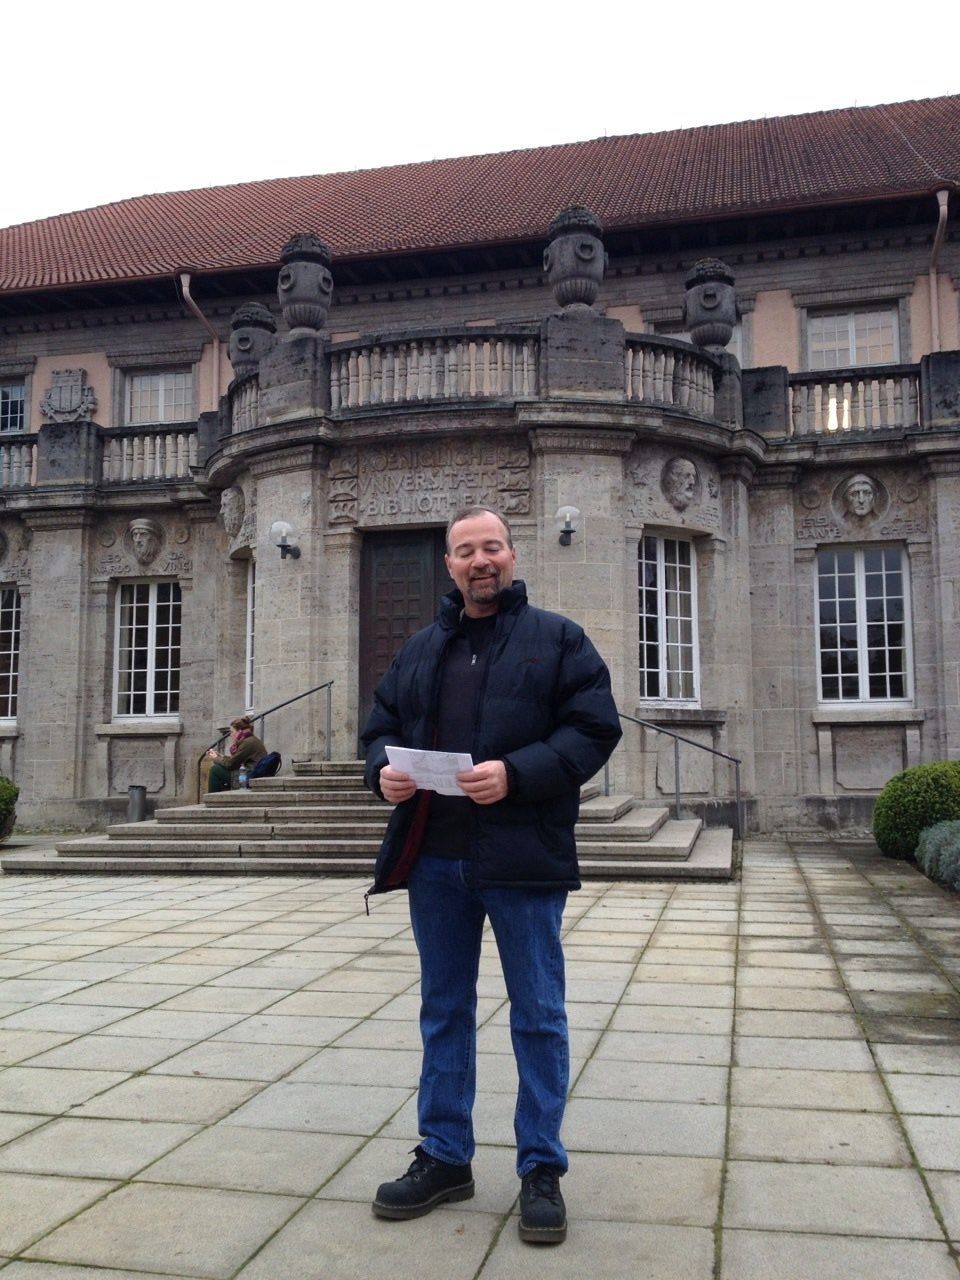 Victor Prince at University of Tubingen Library